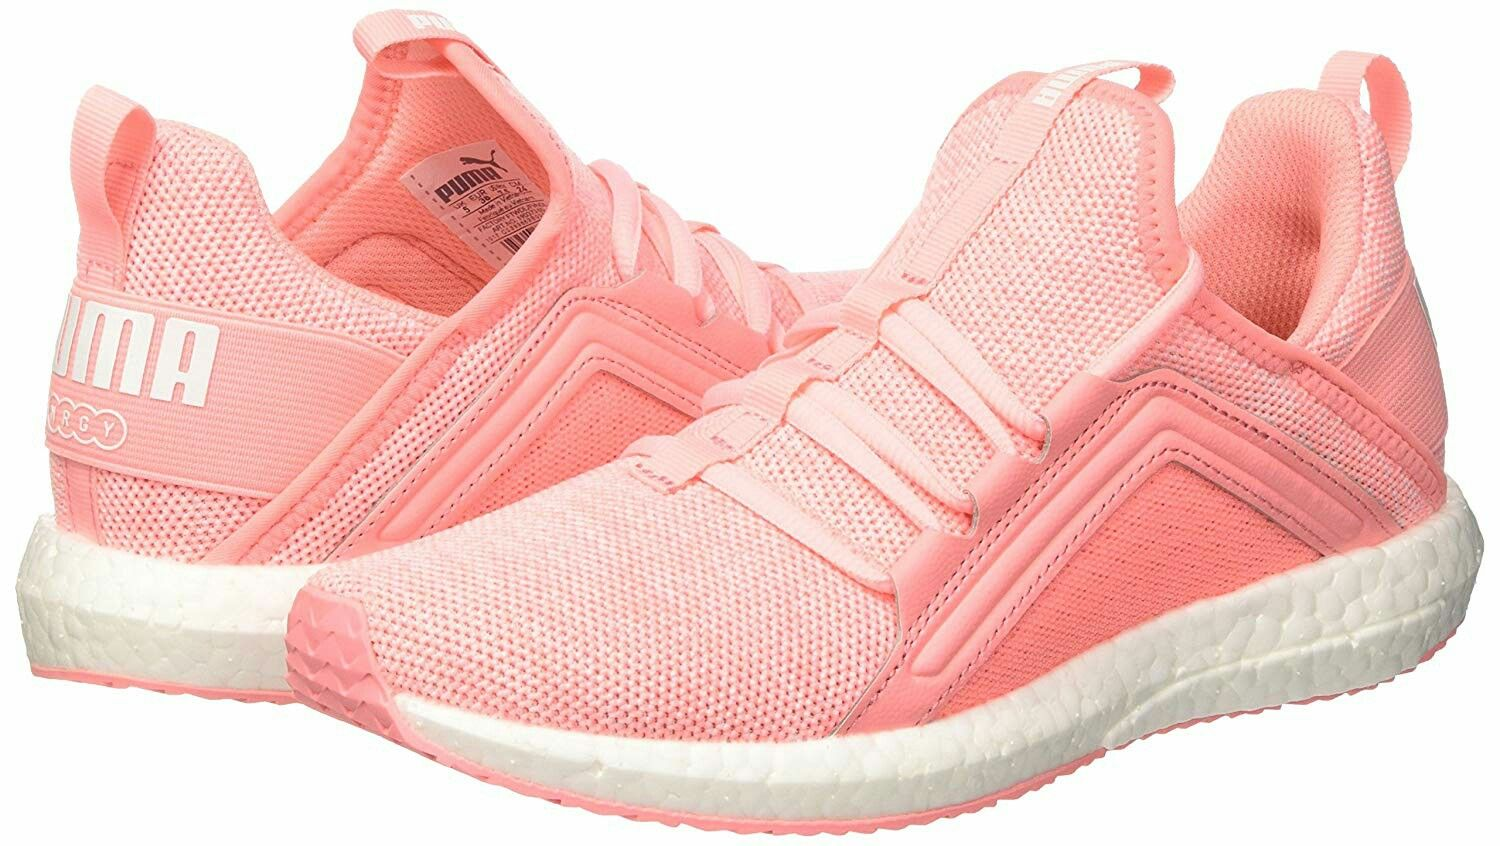 5019fcaca16 Puma Women s Mega Nrgy Knit WN s Running Shoes